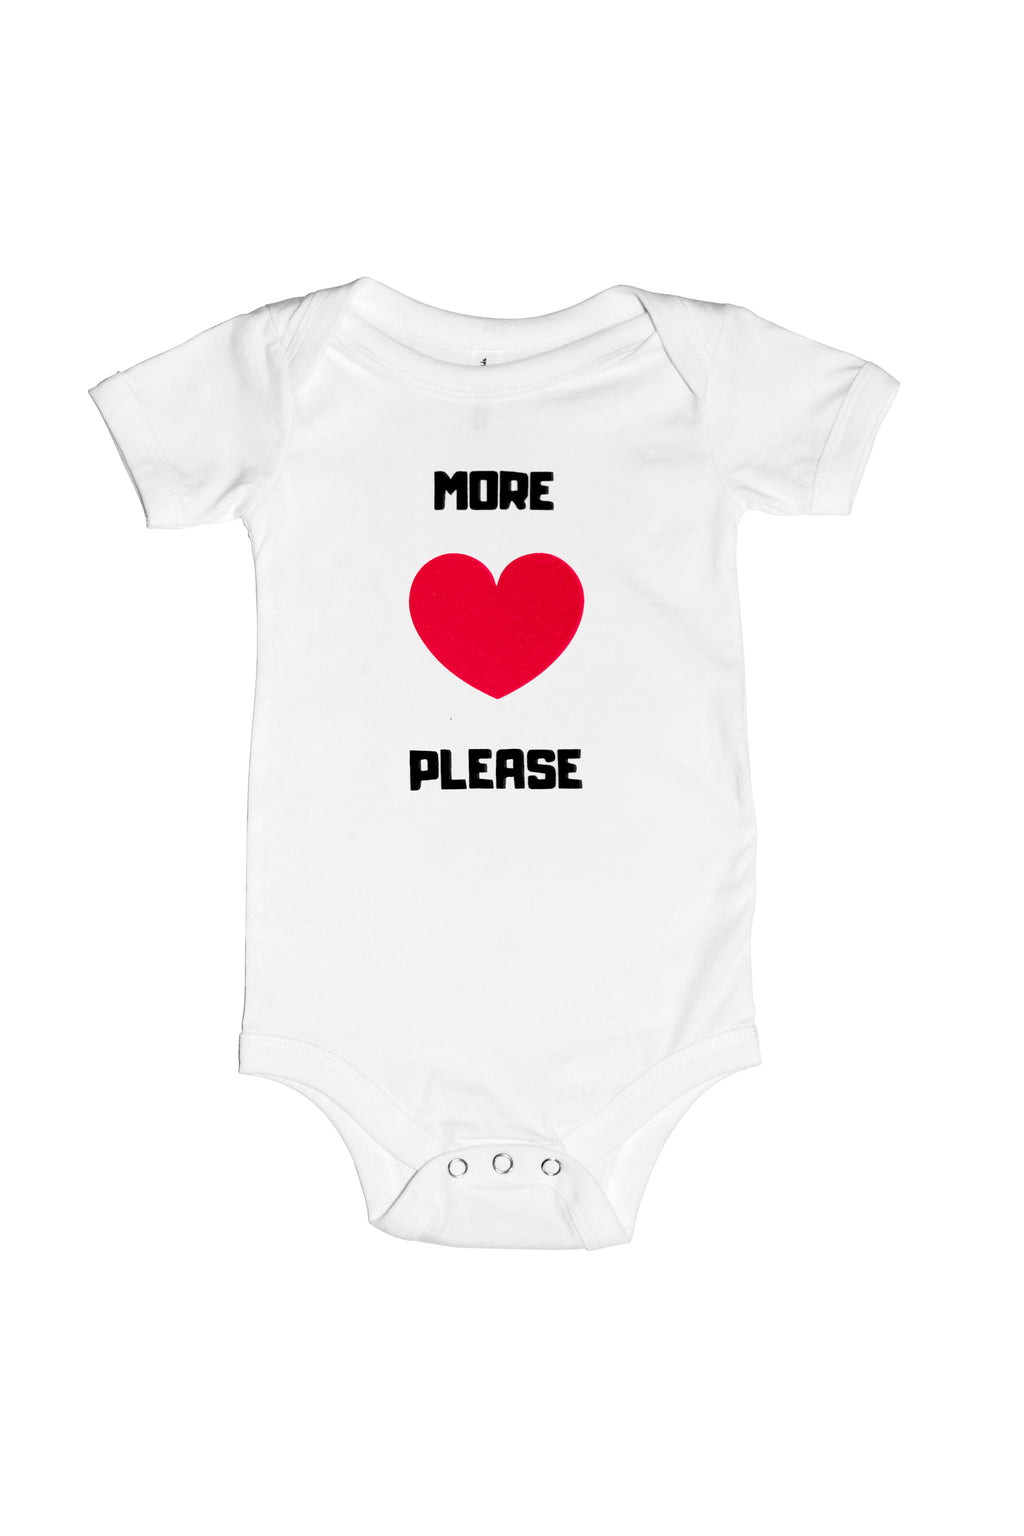 More Love Please Onesie